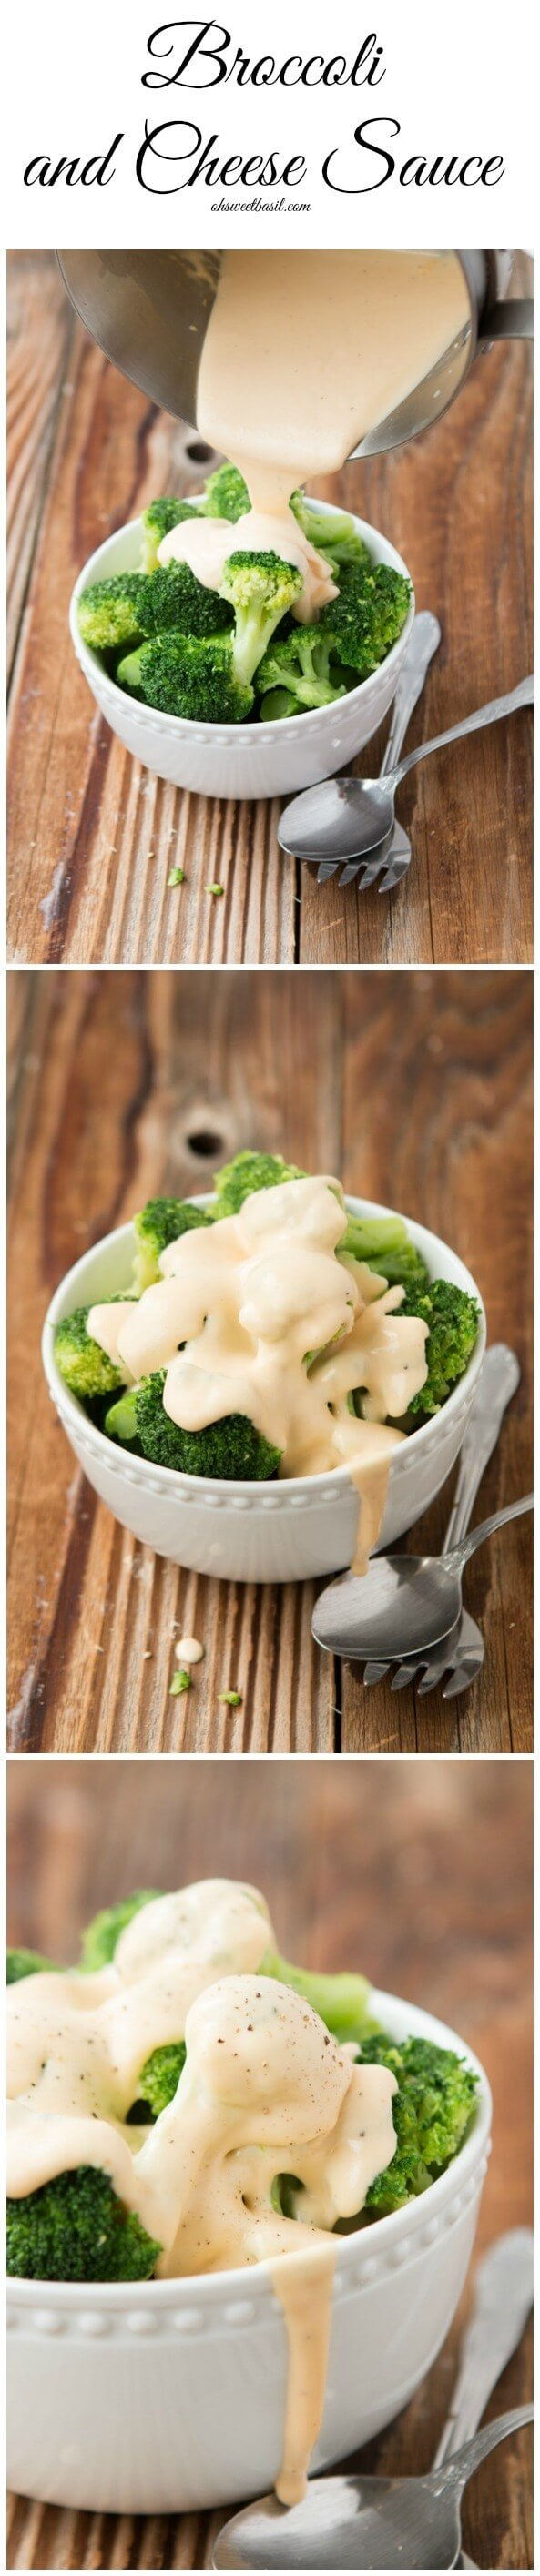 Broccoli with homemade cheese sauce (made with real cheese) ohsweetbasil.com